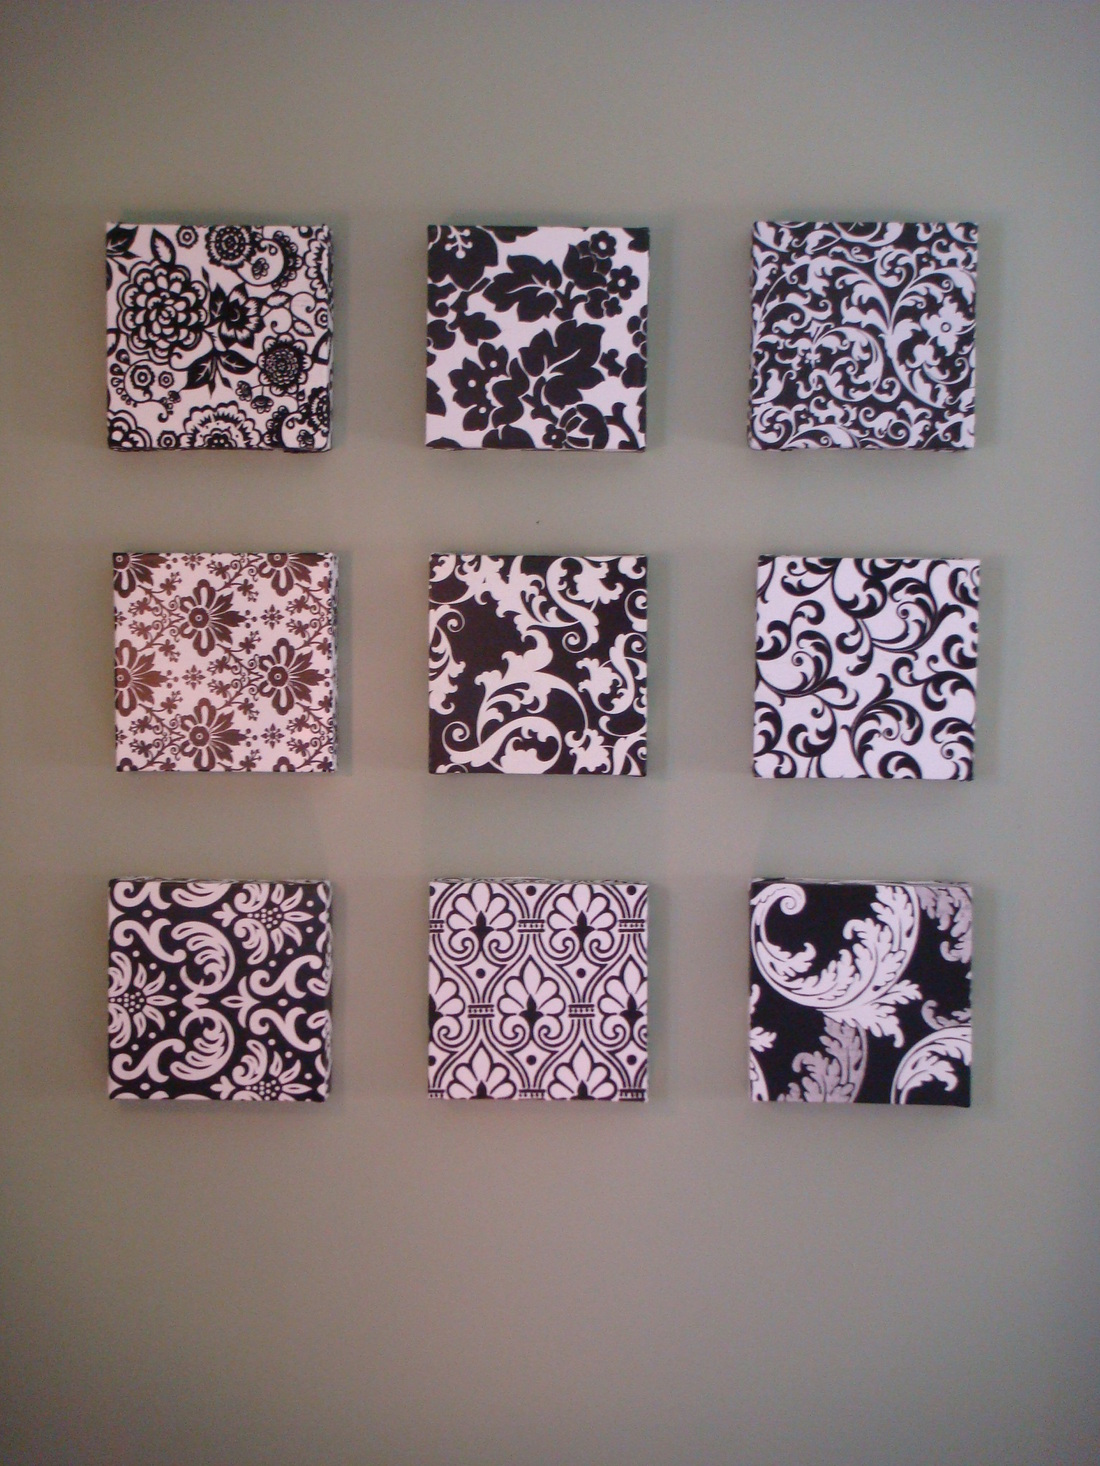 Cool Diy Wall Art Ideas : More cheap and easy wall art sew classy designs